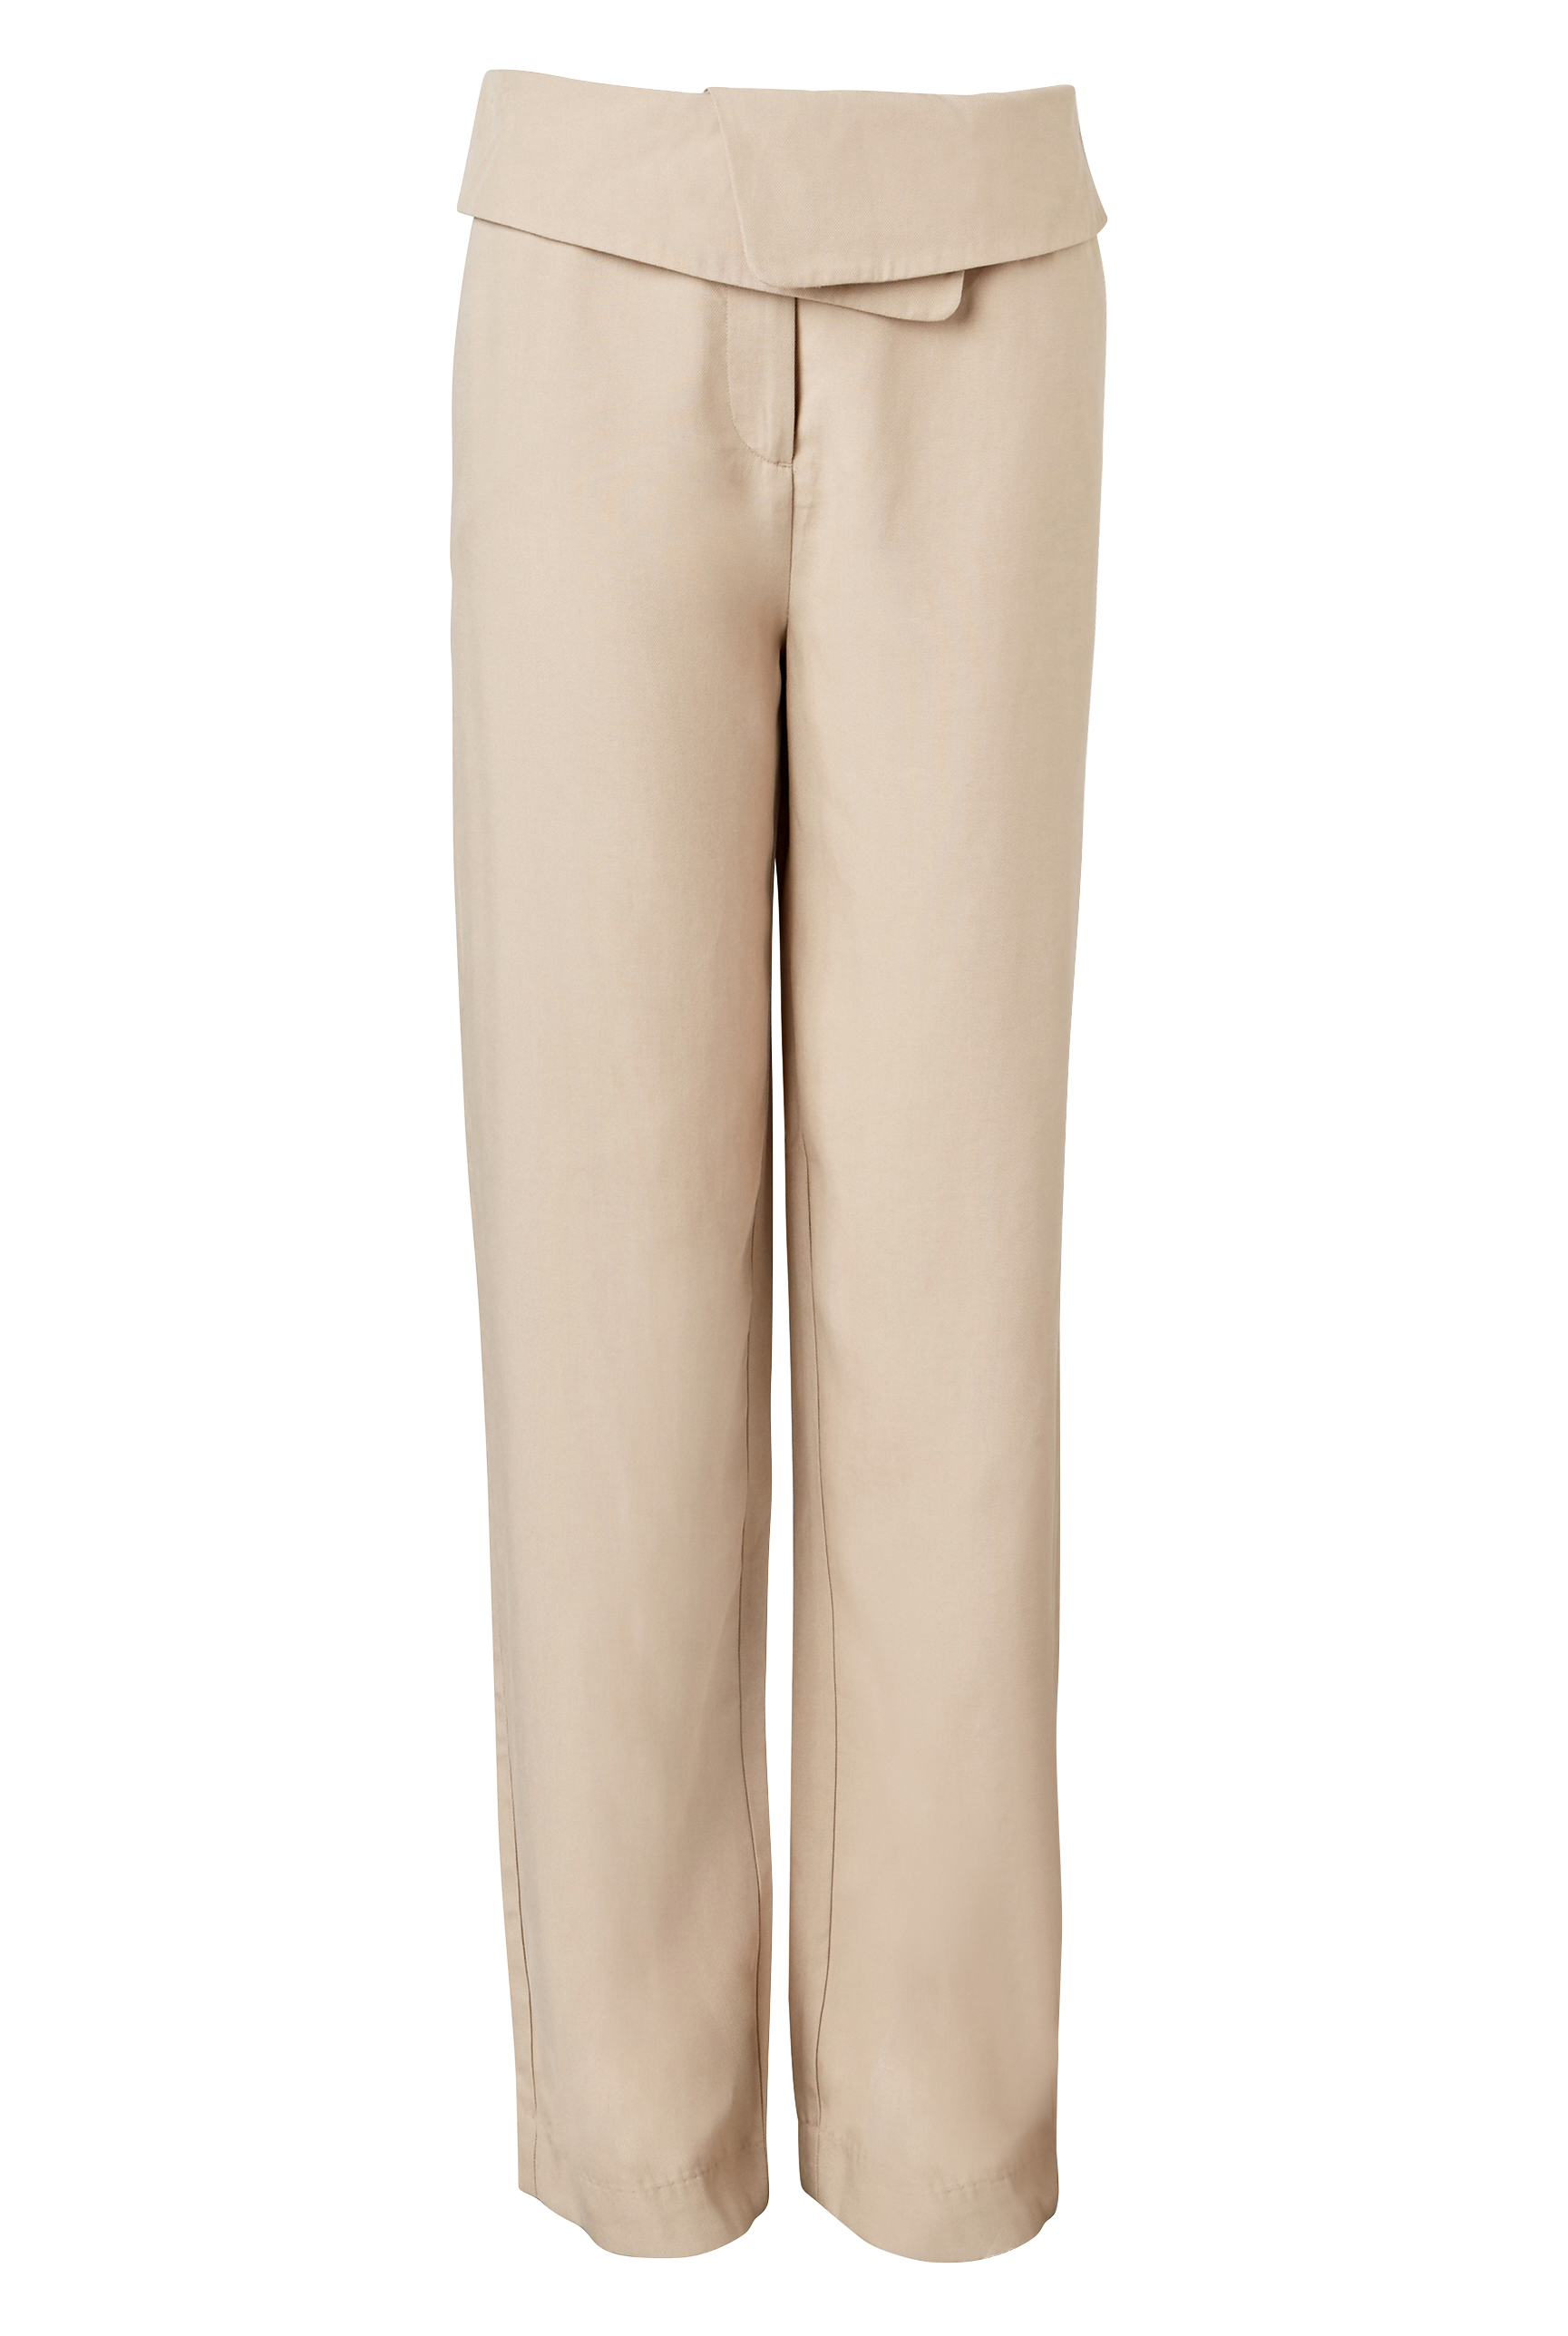 60197244_Witchery Fold Over Pant, RRP $169.90